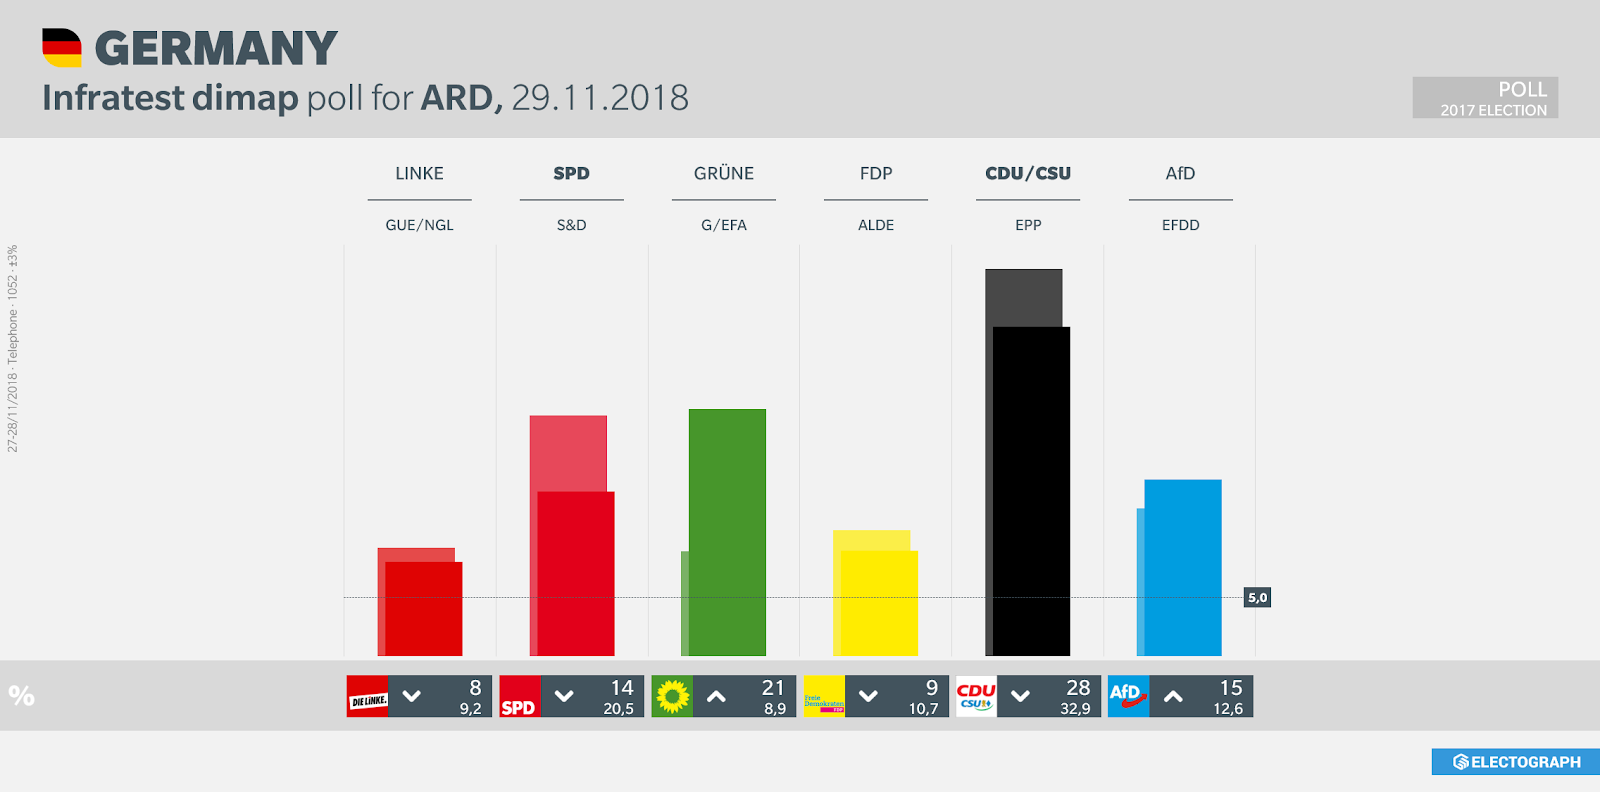 GERMANY: Infratest dimap poll chart for ARD, 29 November 2018